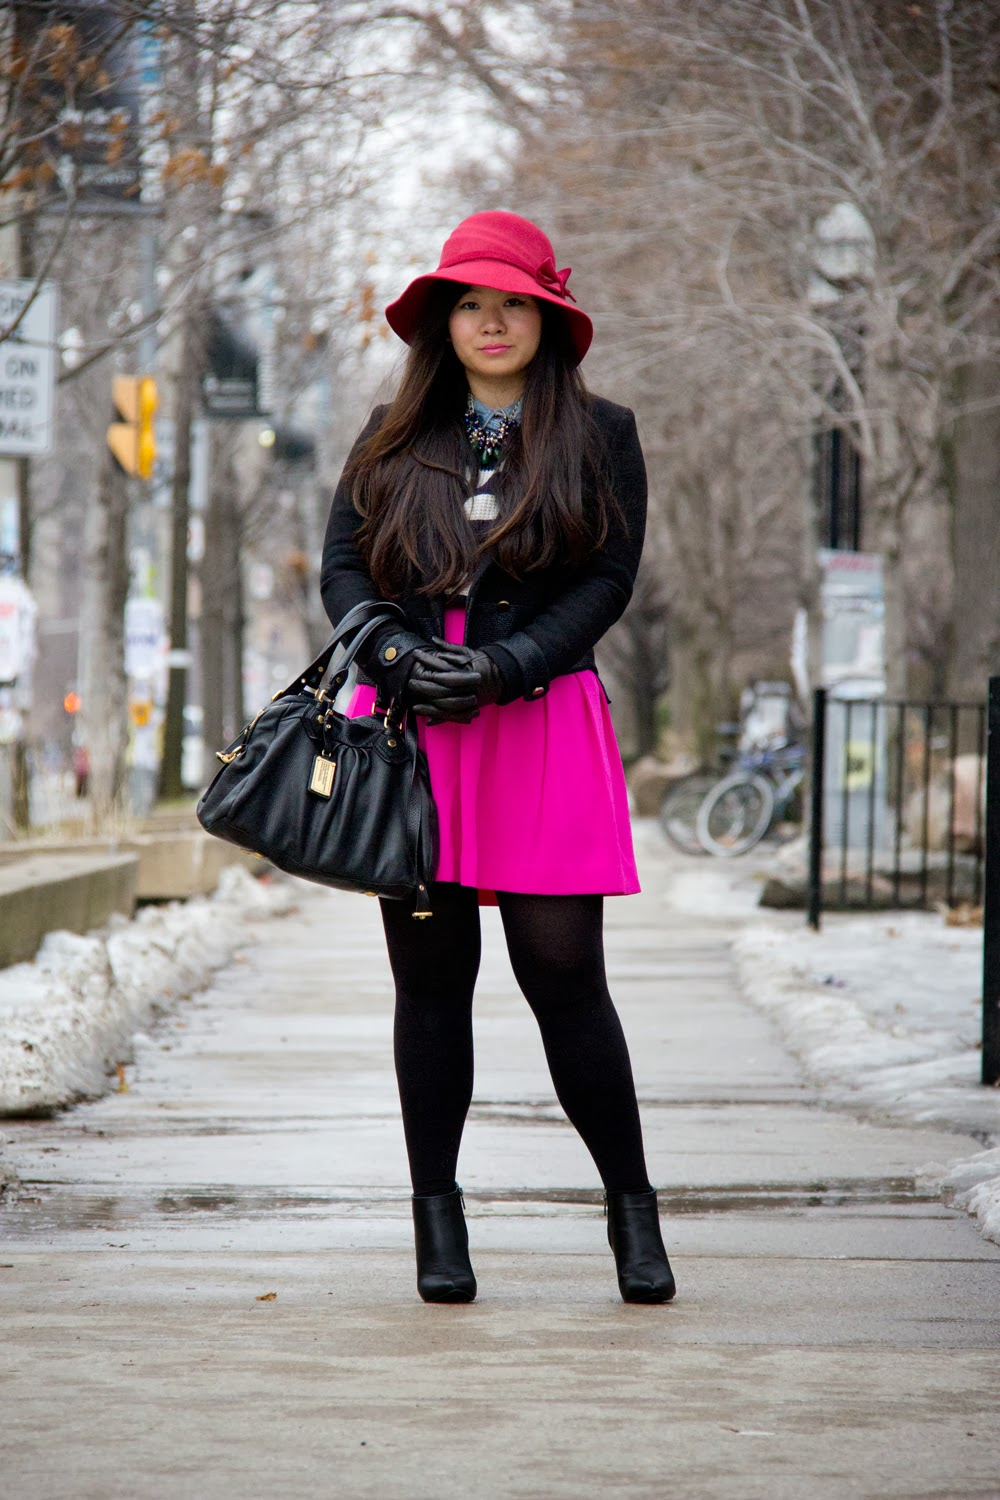 Anthropologie-Vintage-Hat, Zara-Jacket, JCrew-Hot-Pink-Skirt, LeChateau-Ankle-Boots